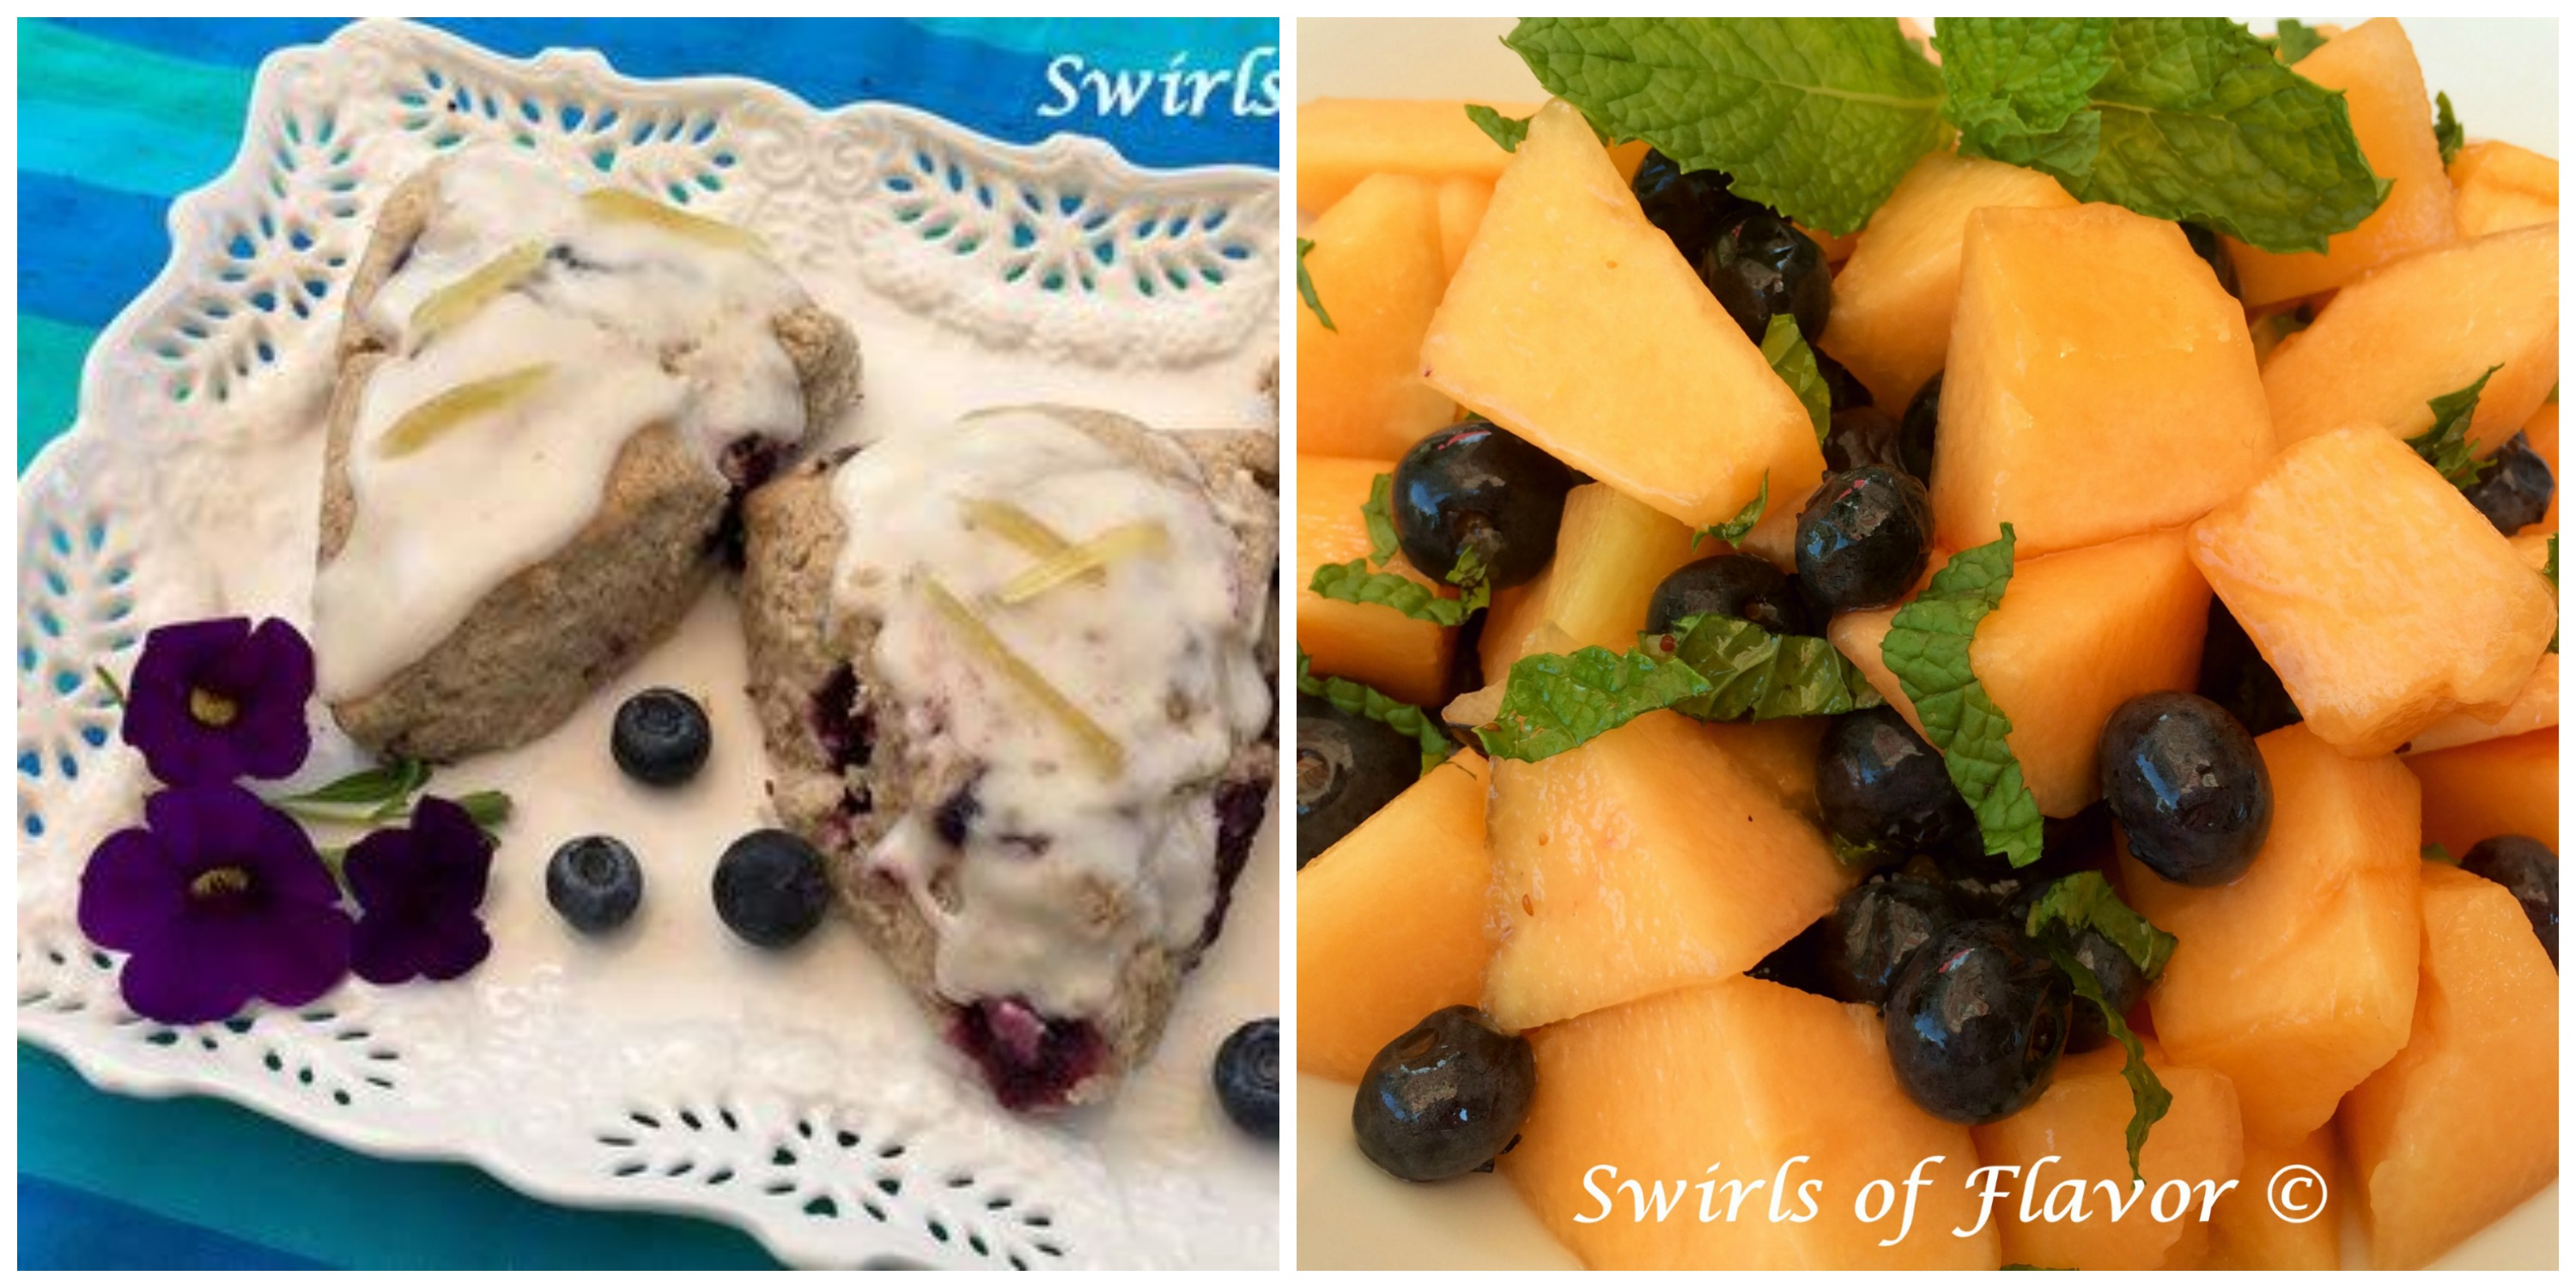 Blueberry Scones and Blueberry Cantaloupe Salad